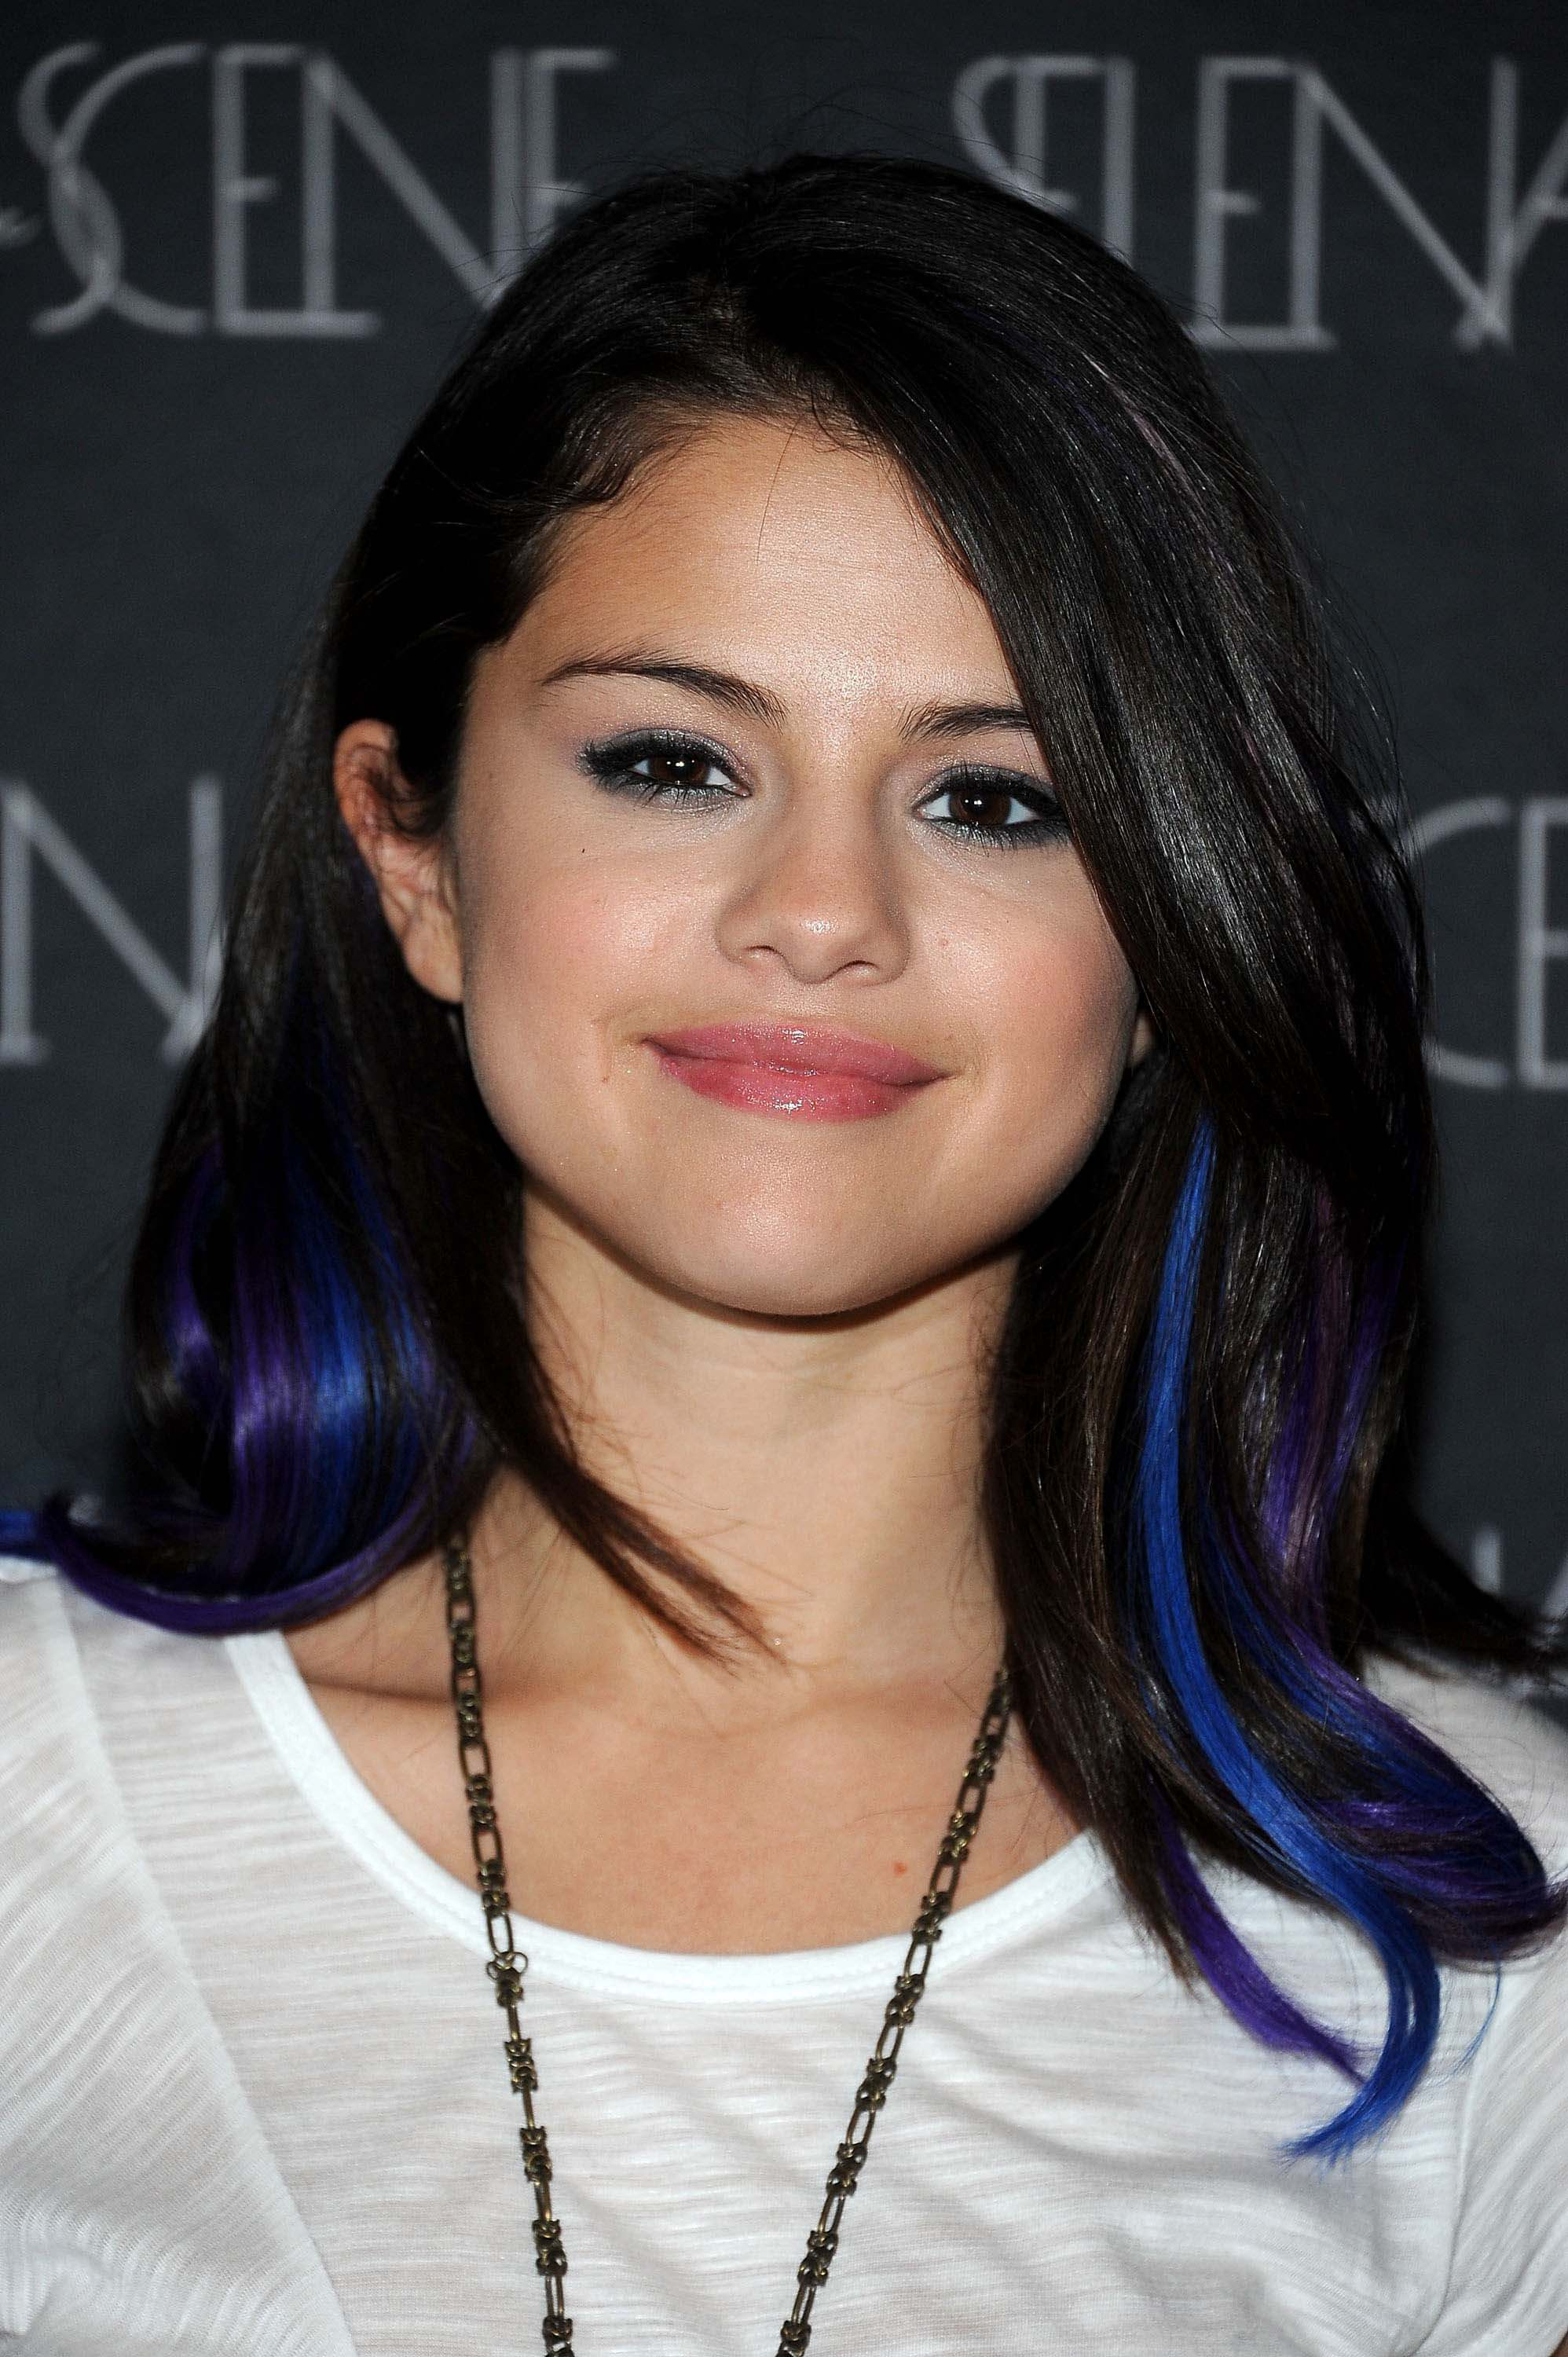 Blue hair 17 amazing a list looks you need to see selena gomez with dark hair and electric blue highlights pmusecretfo Choice Image